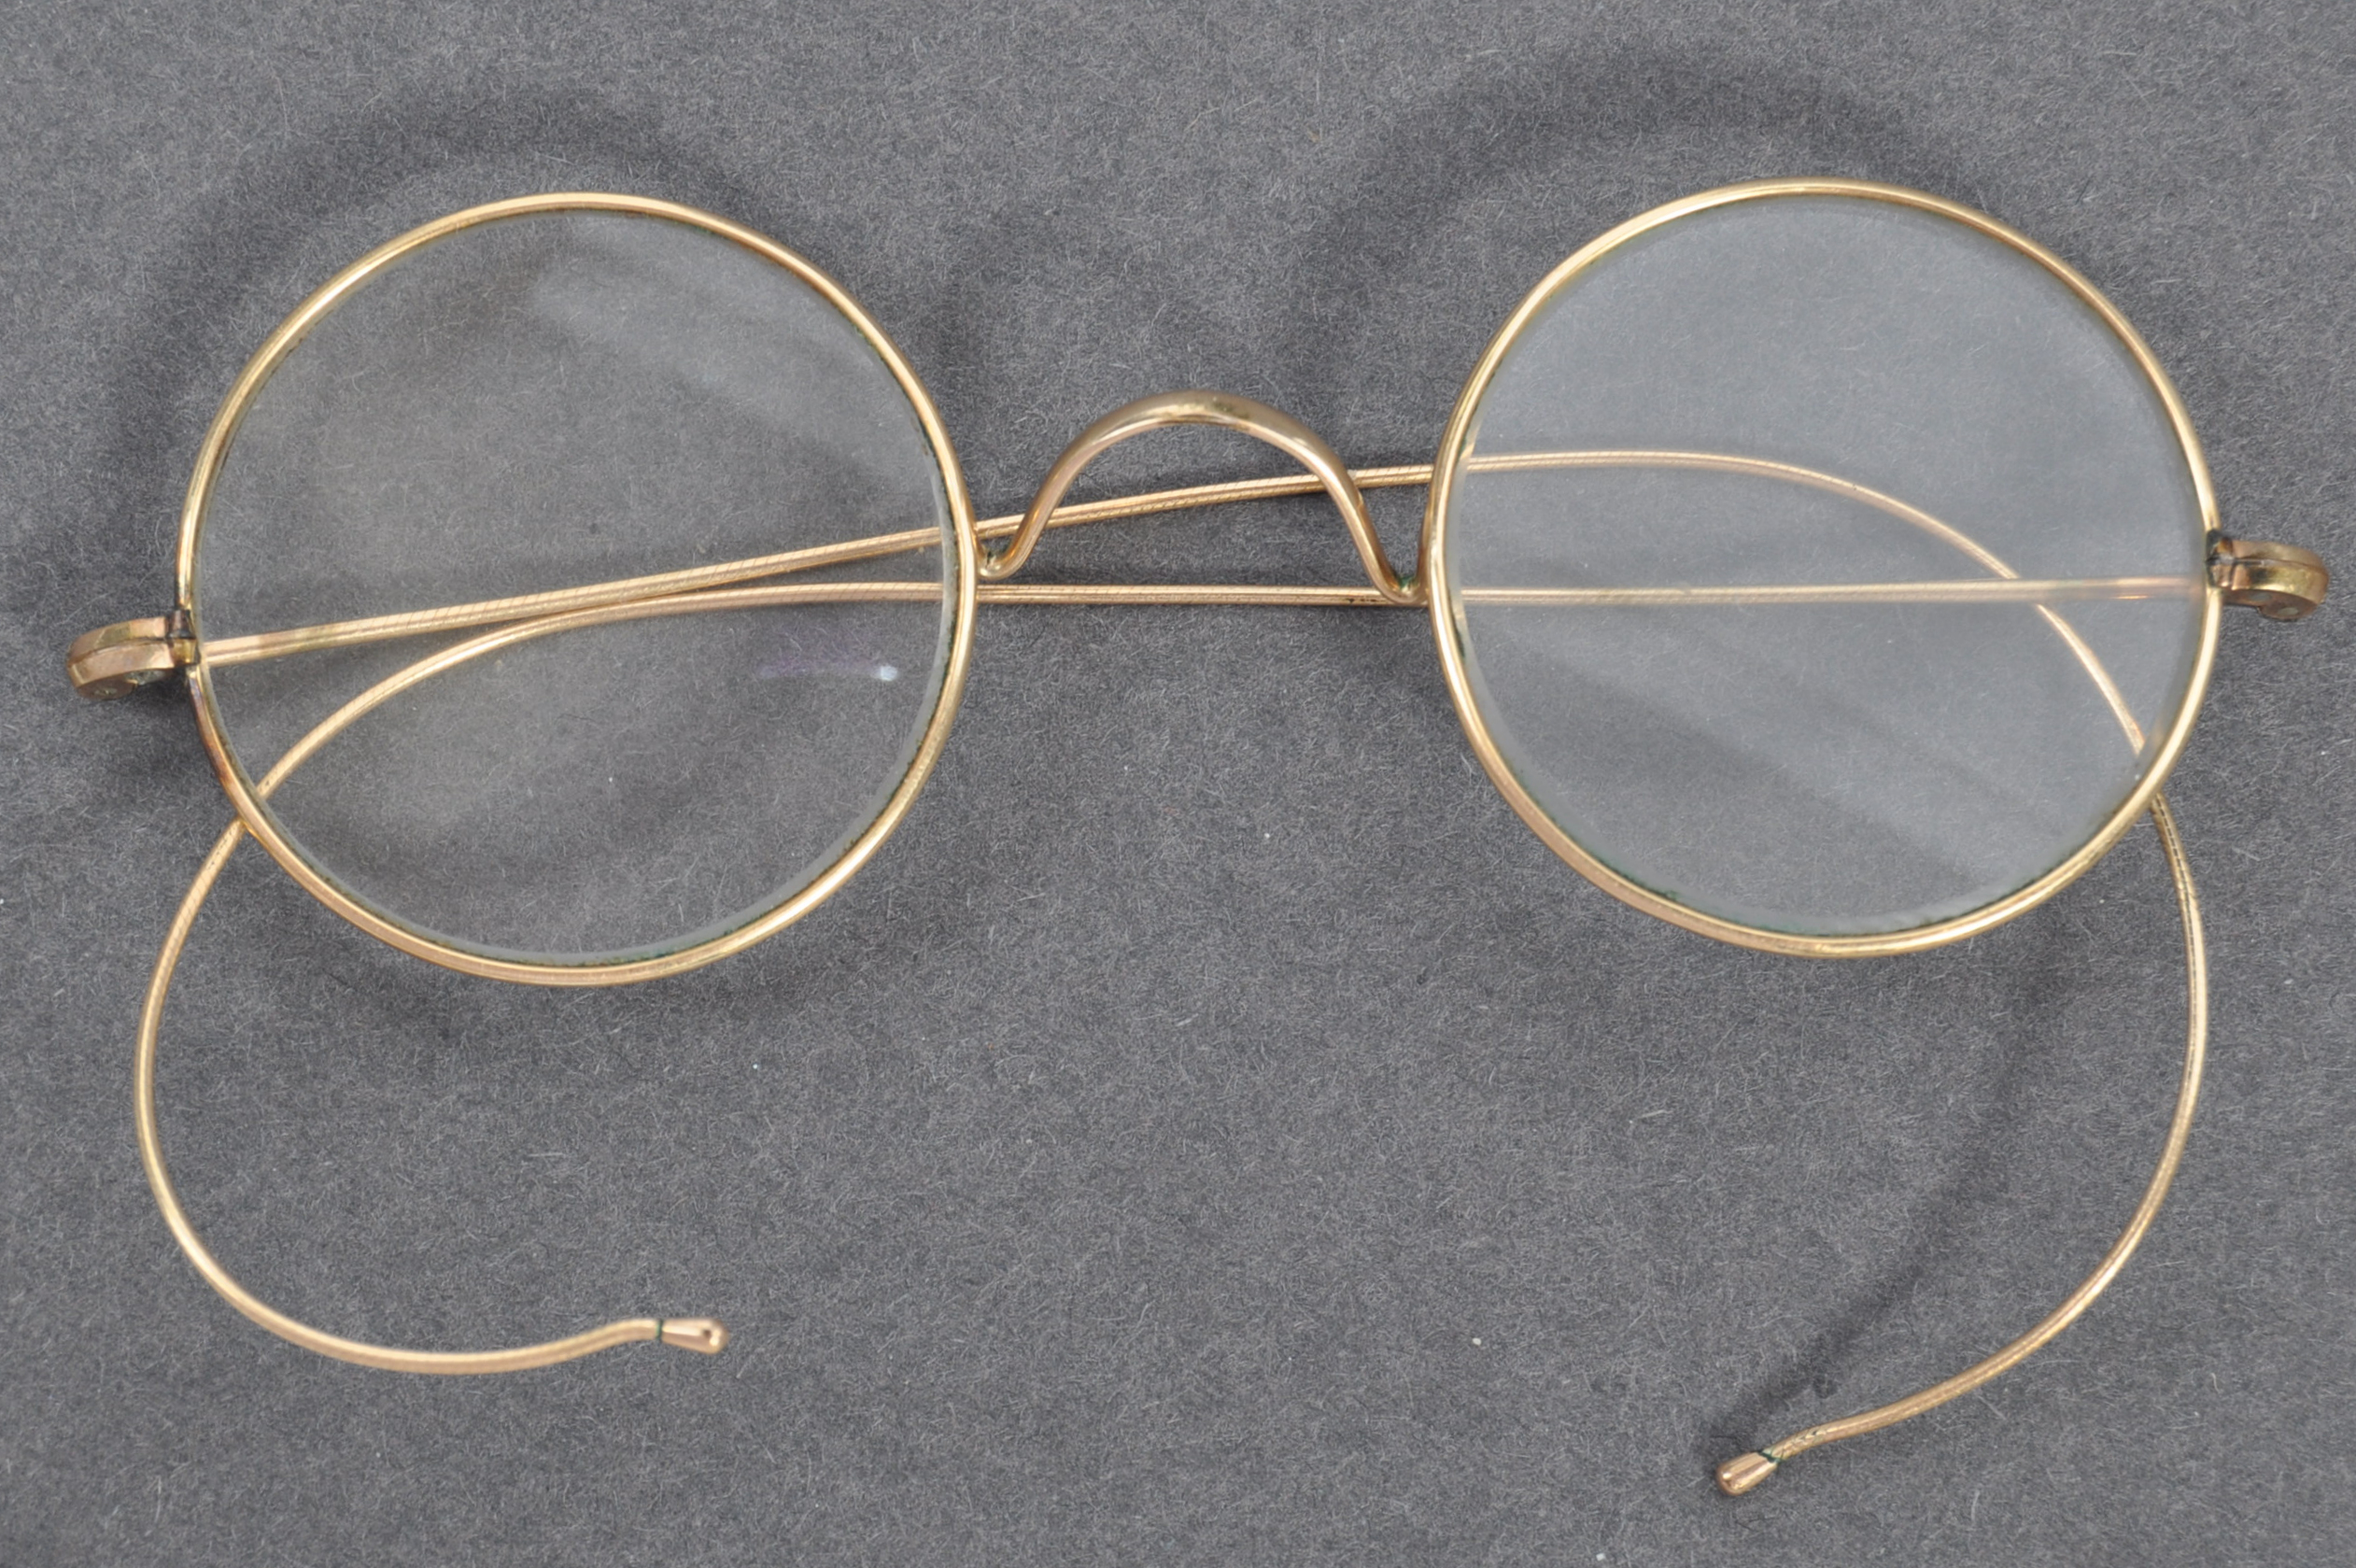 PAIR OF MATHATMA GANDHI'S PERSONAL SPECTACLES - Image 6 of 7